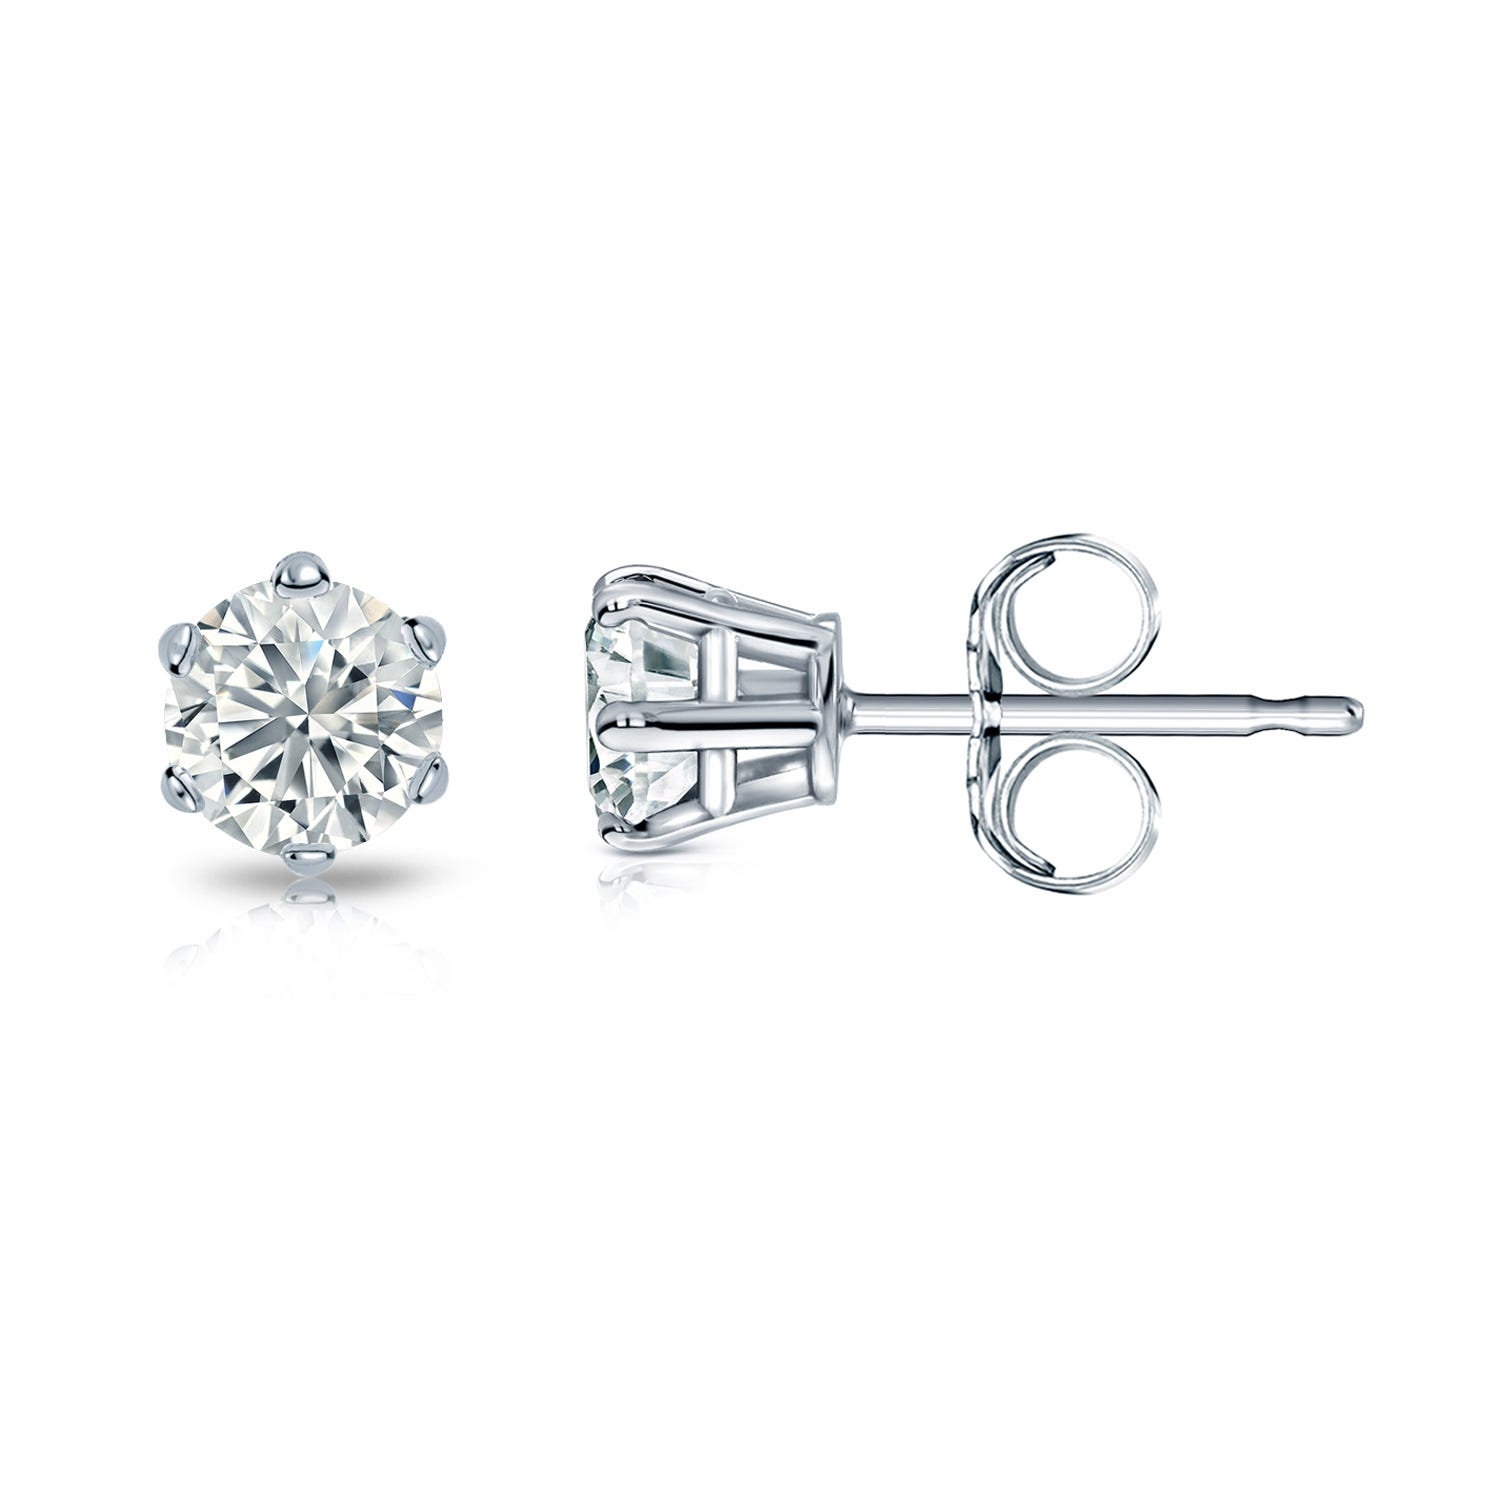 Round Diamond 1/3ctw. (IJ-SI1) Solitaire Stud 6-Prong Earrings in 14K White Gold